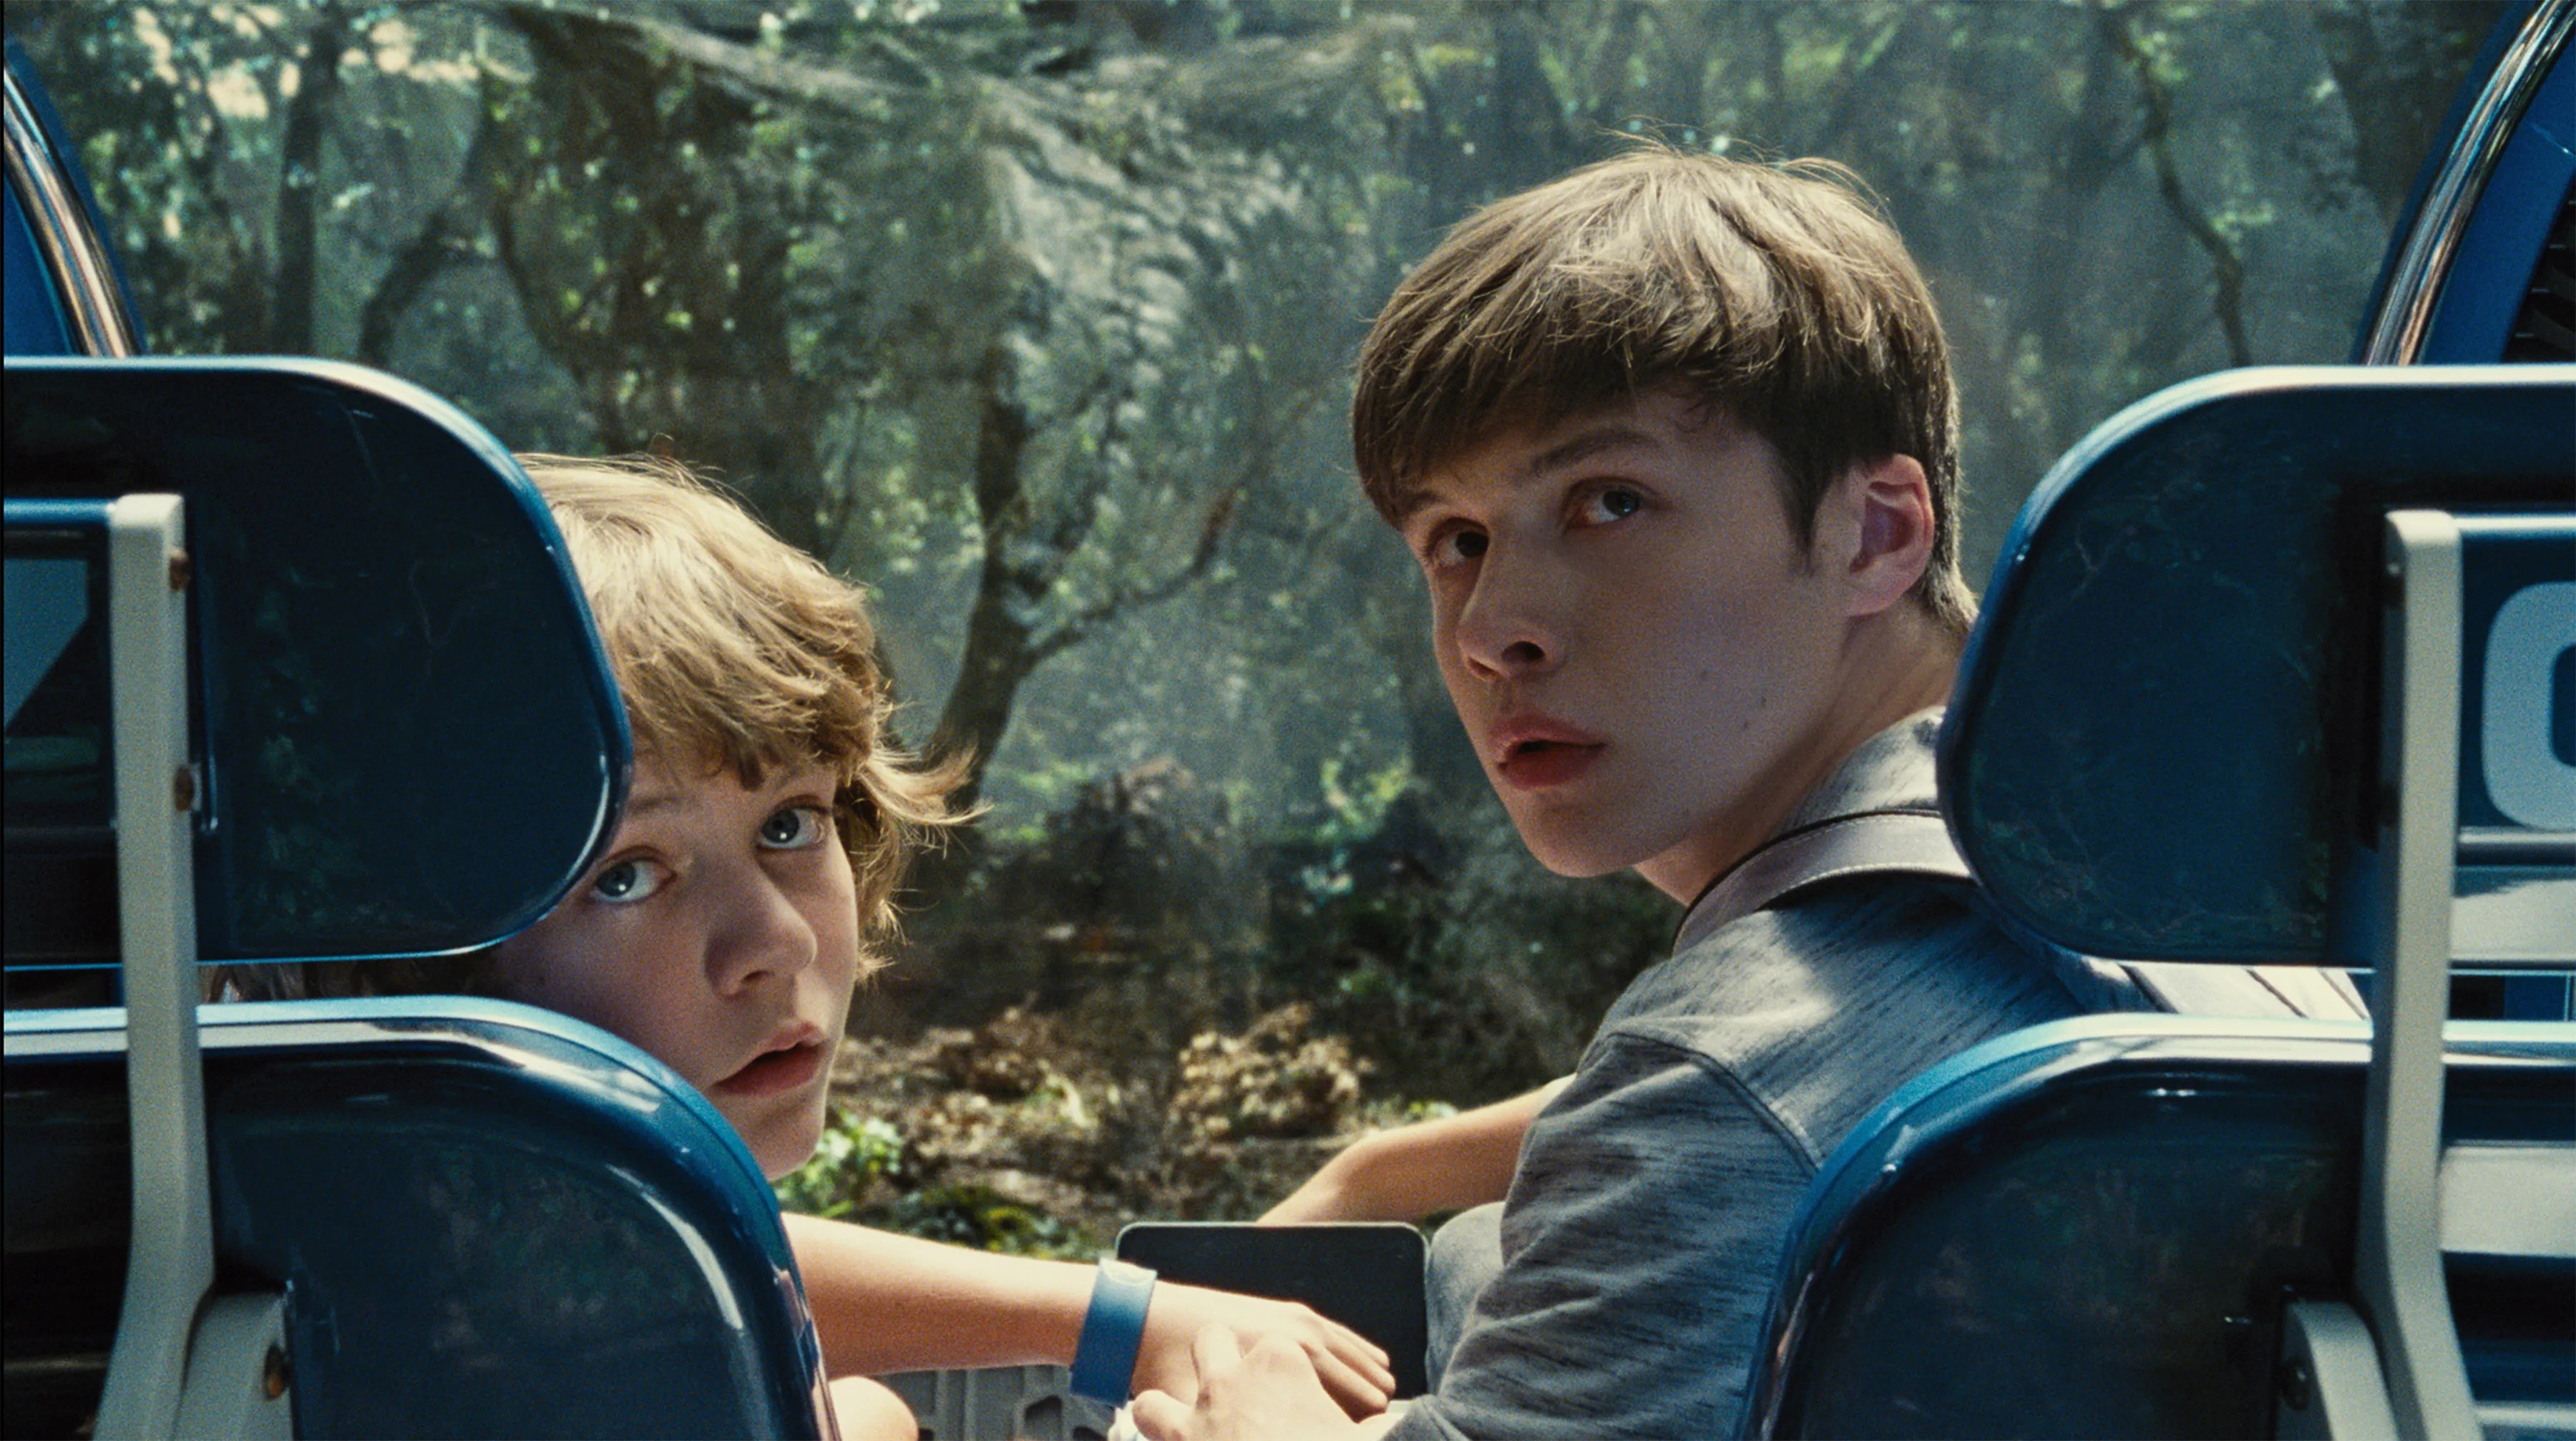 https://i0.wp.com/cdn.collider.com/wp-content/uploads/2015/06/jurassic-world-nick-robinson-ty-simpkins.jpg